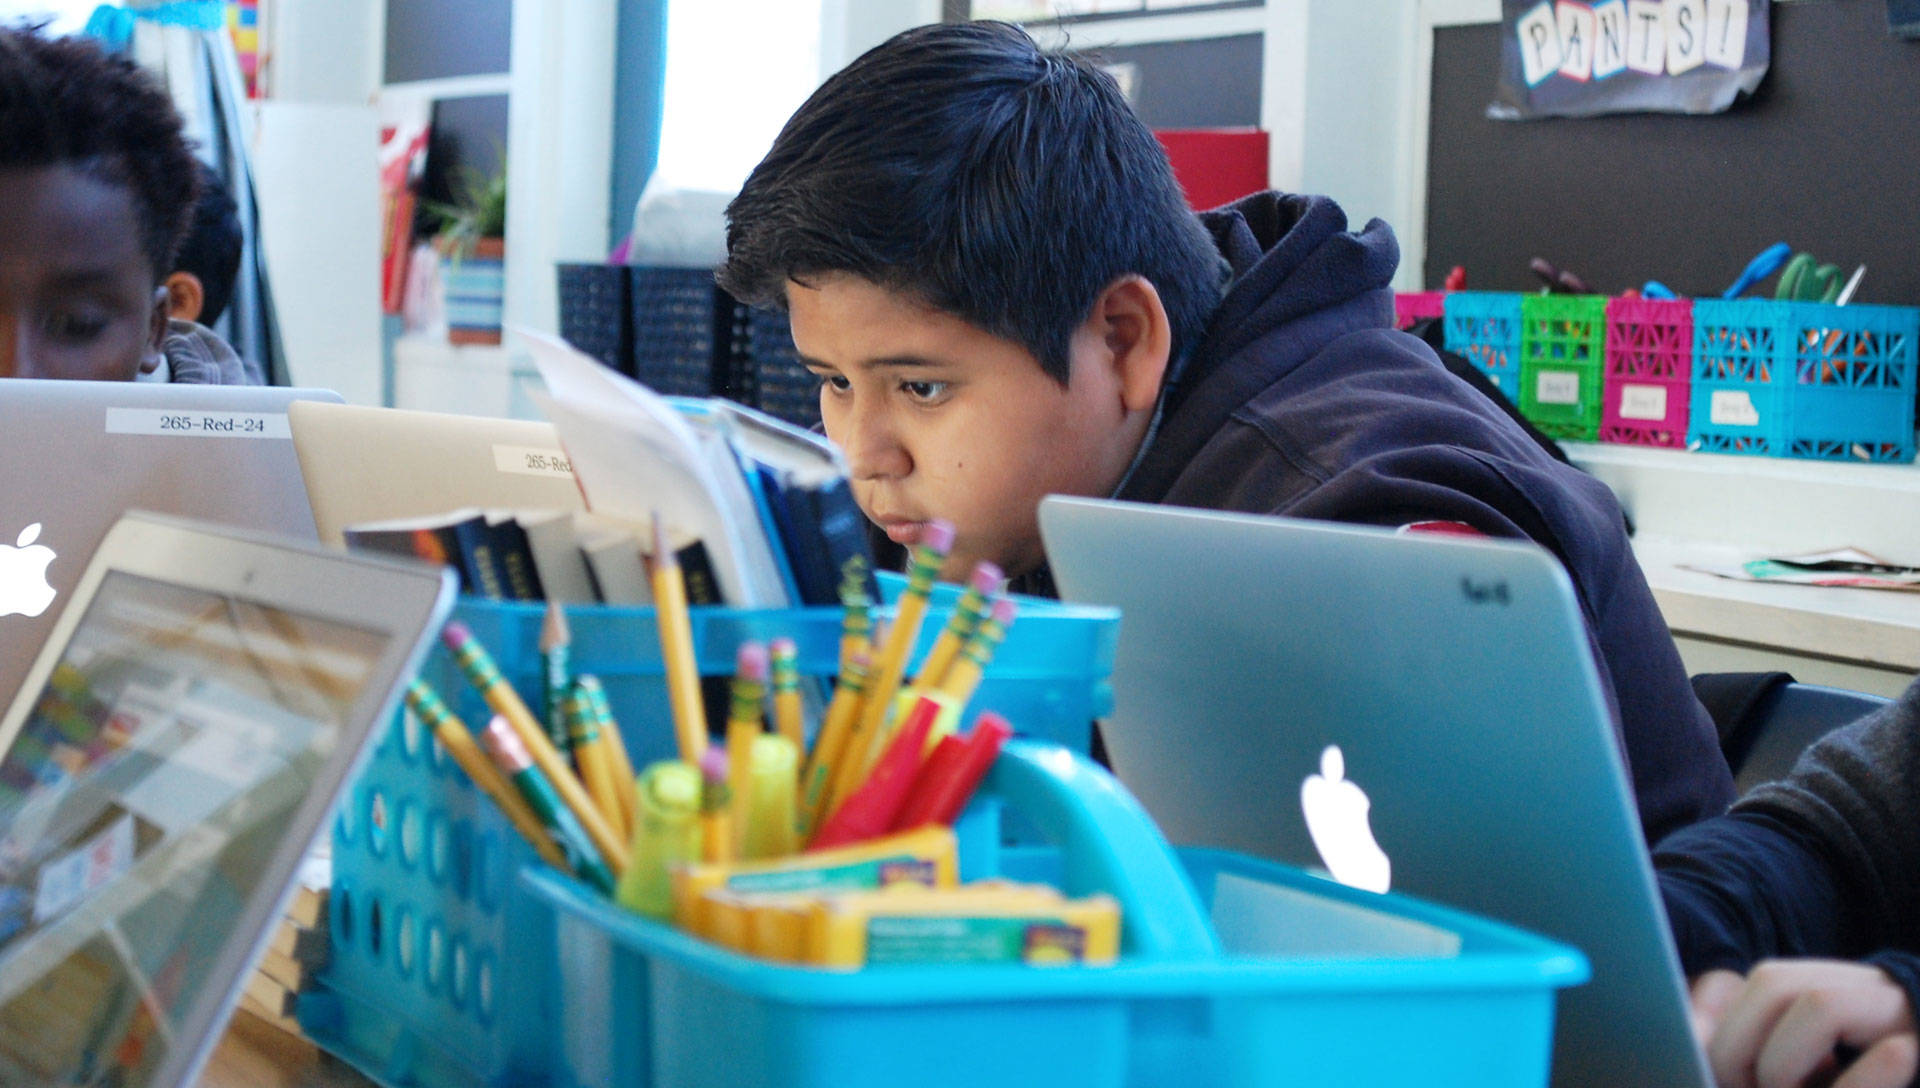 Eleven-year-old Carlos Delrio focuses on completing a computer assignment in his sixth grade class at Oak Ridge Elementary School in Sacramento. Gabriel Salcedo/KQED